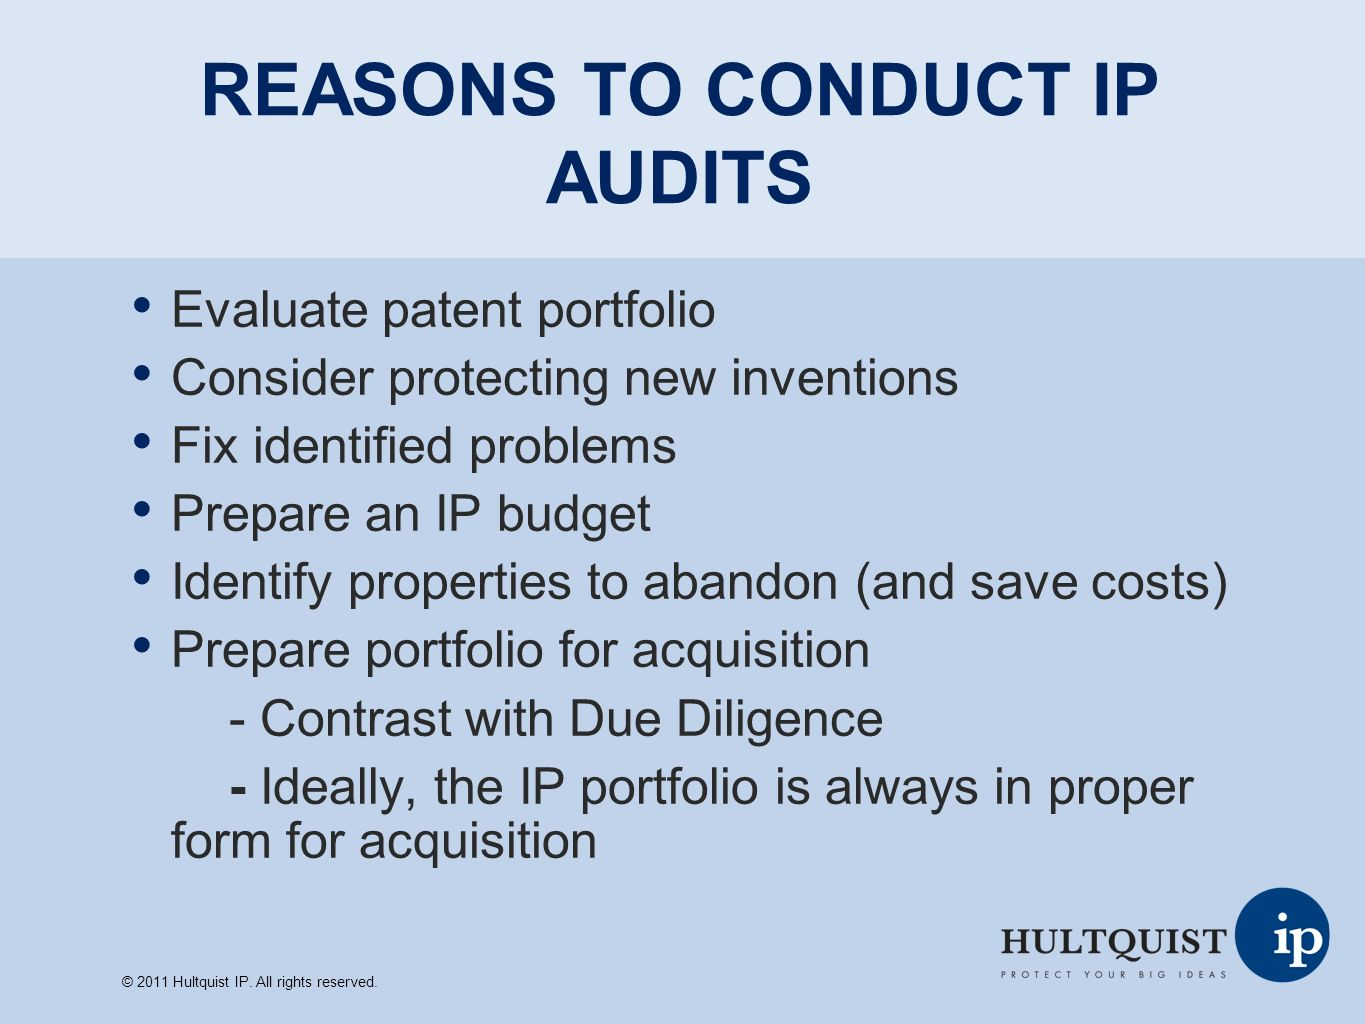 REASONS TO CONDUCT IP AUDITS Evaluate patent portfolio Consider protecting new inventions Fix identified problems Prepare an IP budget Identify properties to abandon (and save costs) Prepare portfolio for acquisition - Contrast with Due Diligence - Ideally, the IP portfolio is always in proper form for acquisition © 2011 Hultquist IP.